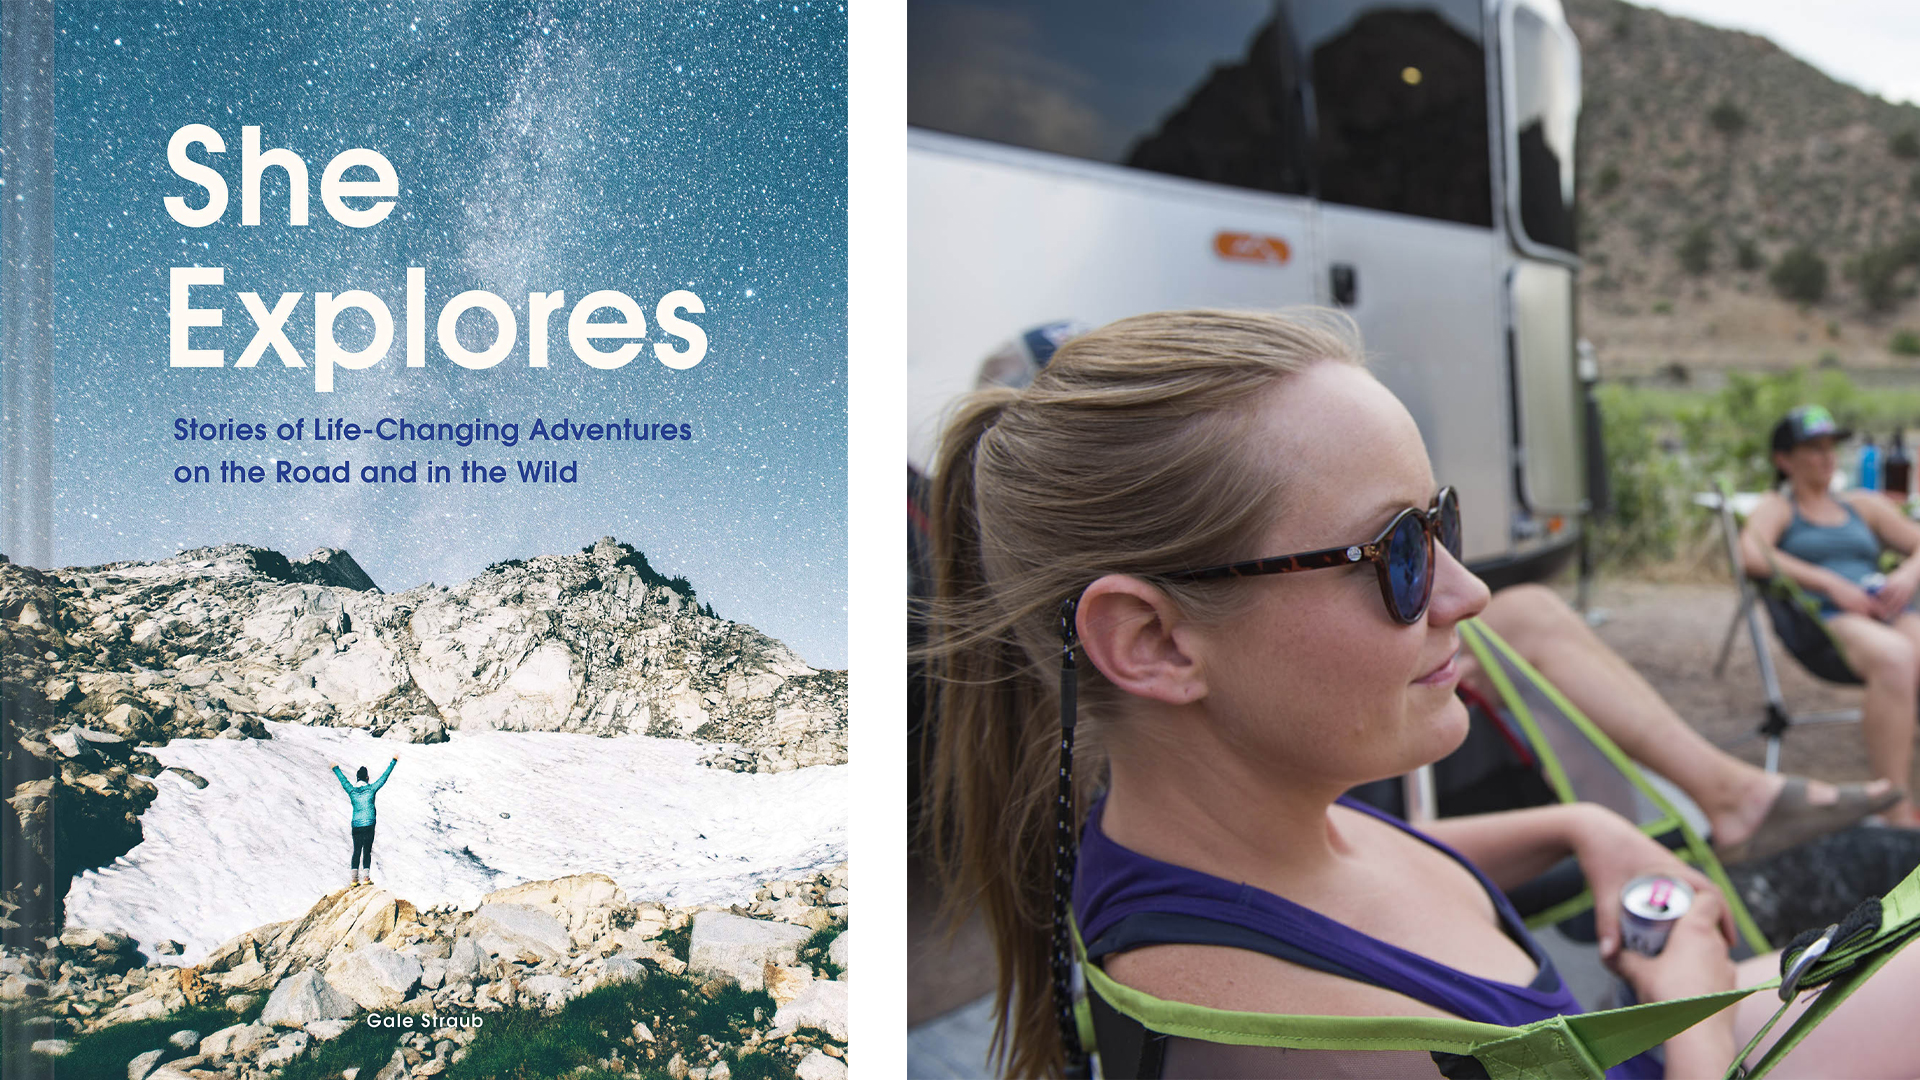 She Explores book cover and a female sitting outside next to her Basecamp Travel Trailer